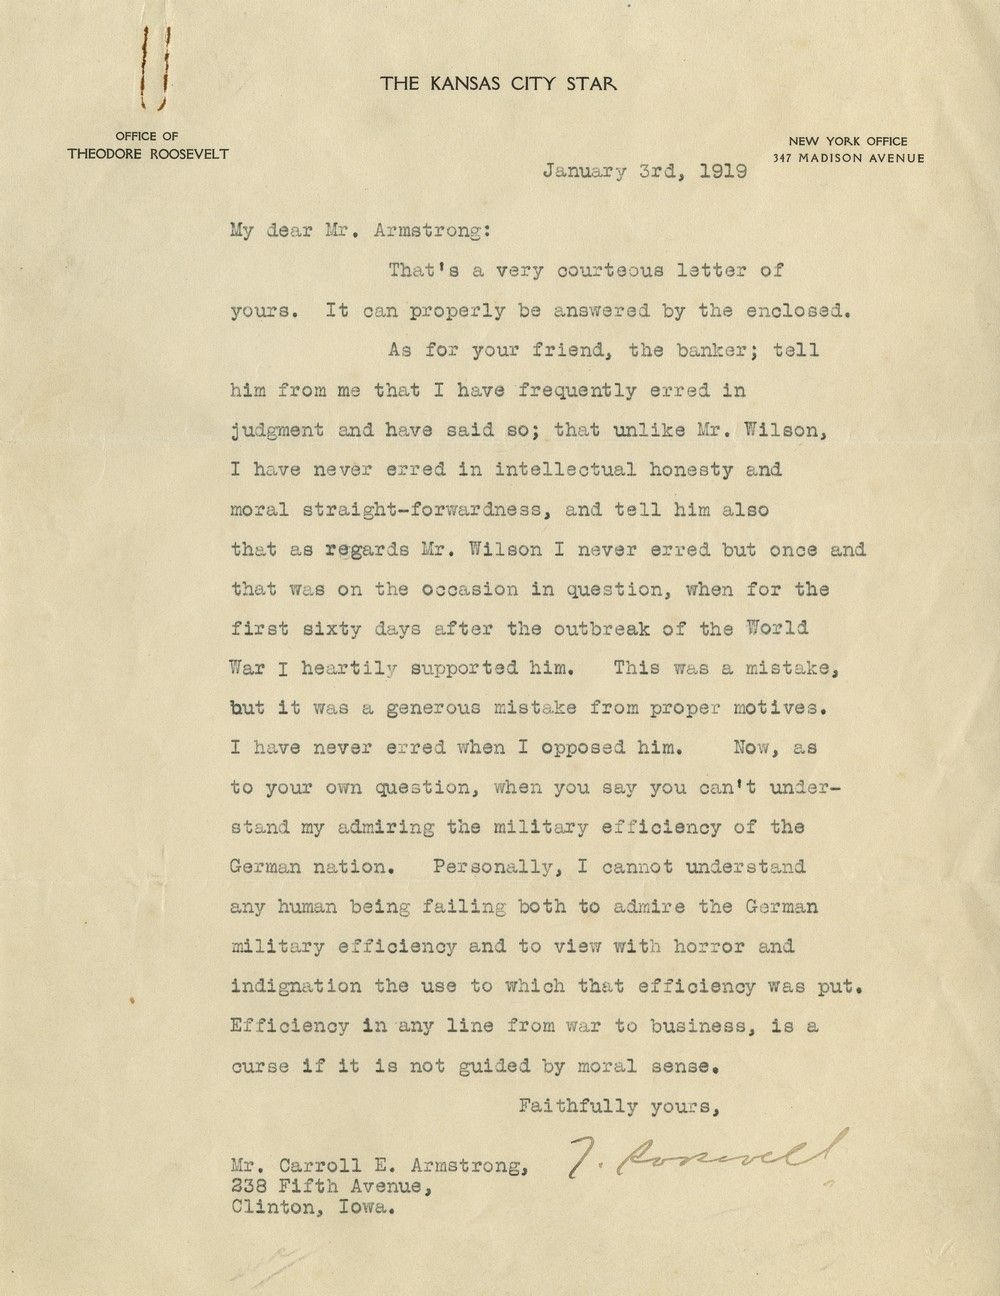 A Final Roar: In One of His Last Letters, Theodore Roosevelt Blasts Woodrow Wilson